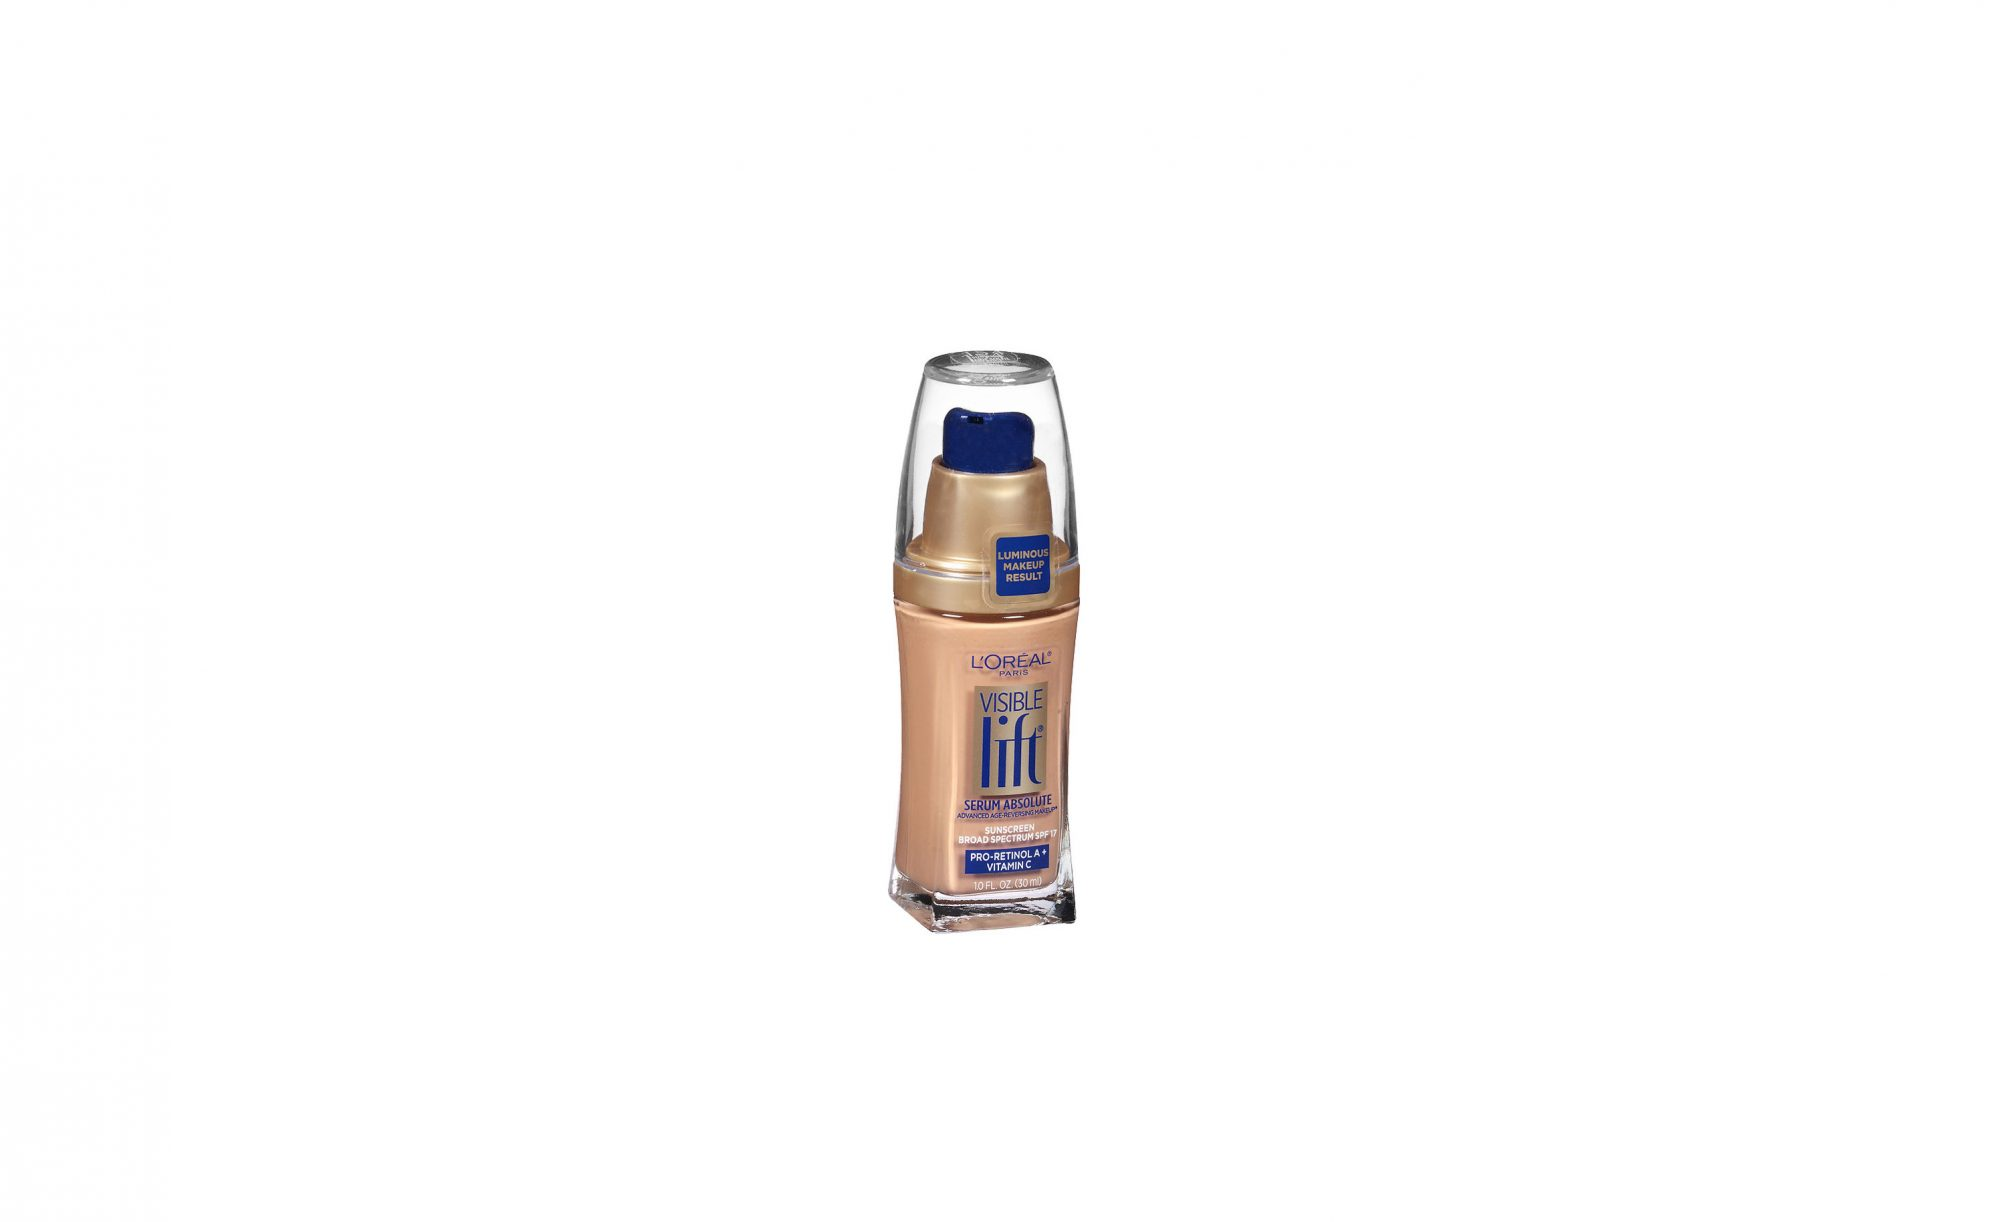 L'Oreal Paris Visible Lift Serum Absolute Advanced Age-Reversing Makeup SPF 17